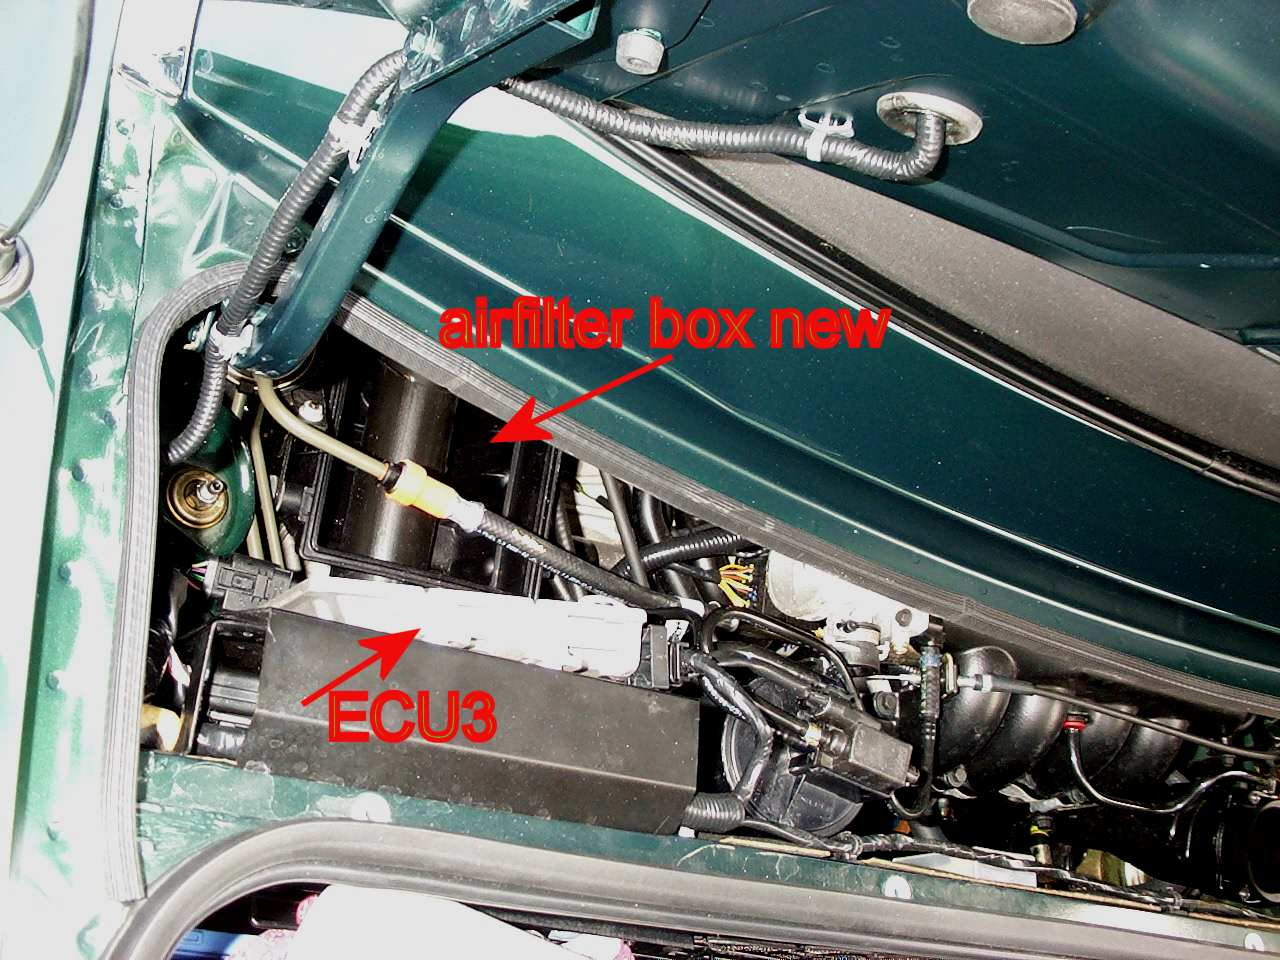 45 ENGINE Spark Plugs and Coils Replacement besides 66421 Msd Atomic Efi Distributor Issue further 615578 Corsa Corsa Fuel Issue furthermore 338291 78 Dodge D150 318 Dual Ballast Wiring Diagram likewise 766641 3 Pin Cd Question. on ignition coil location